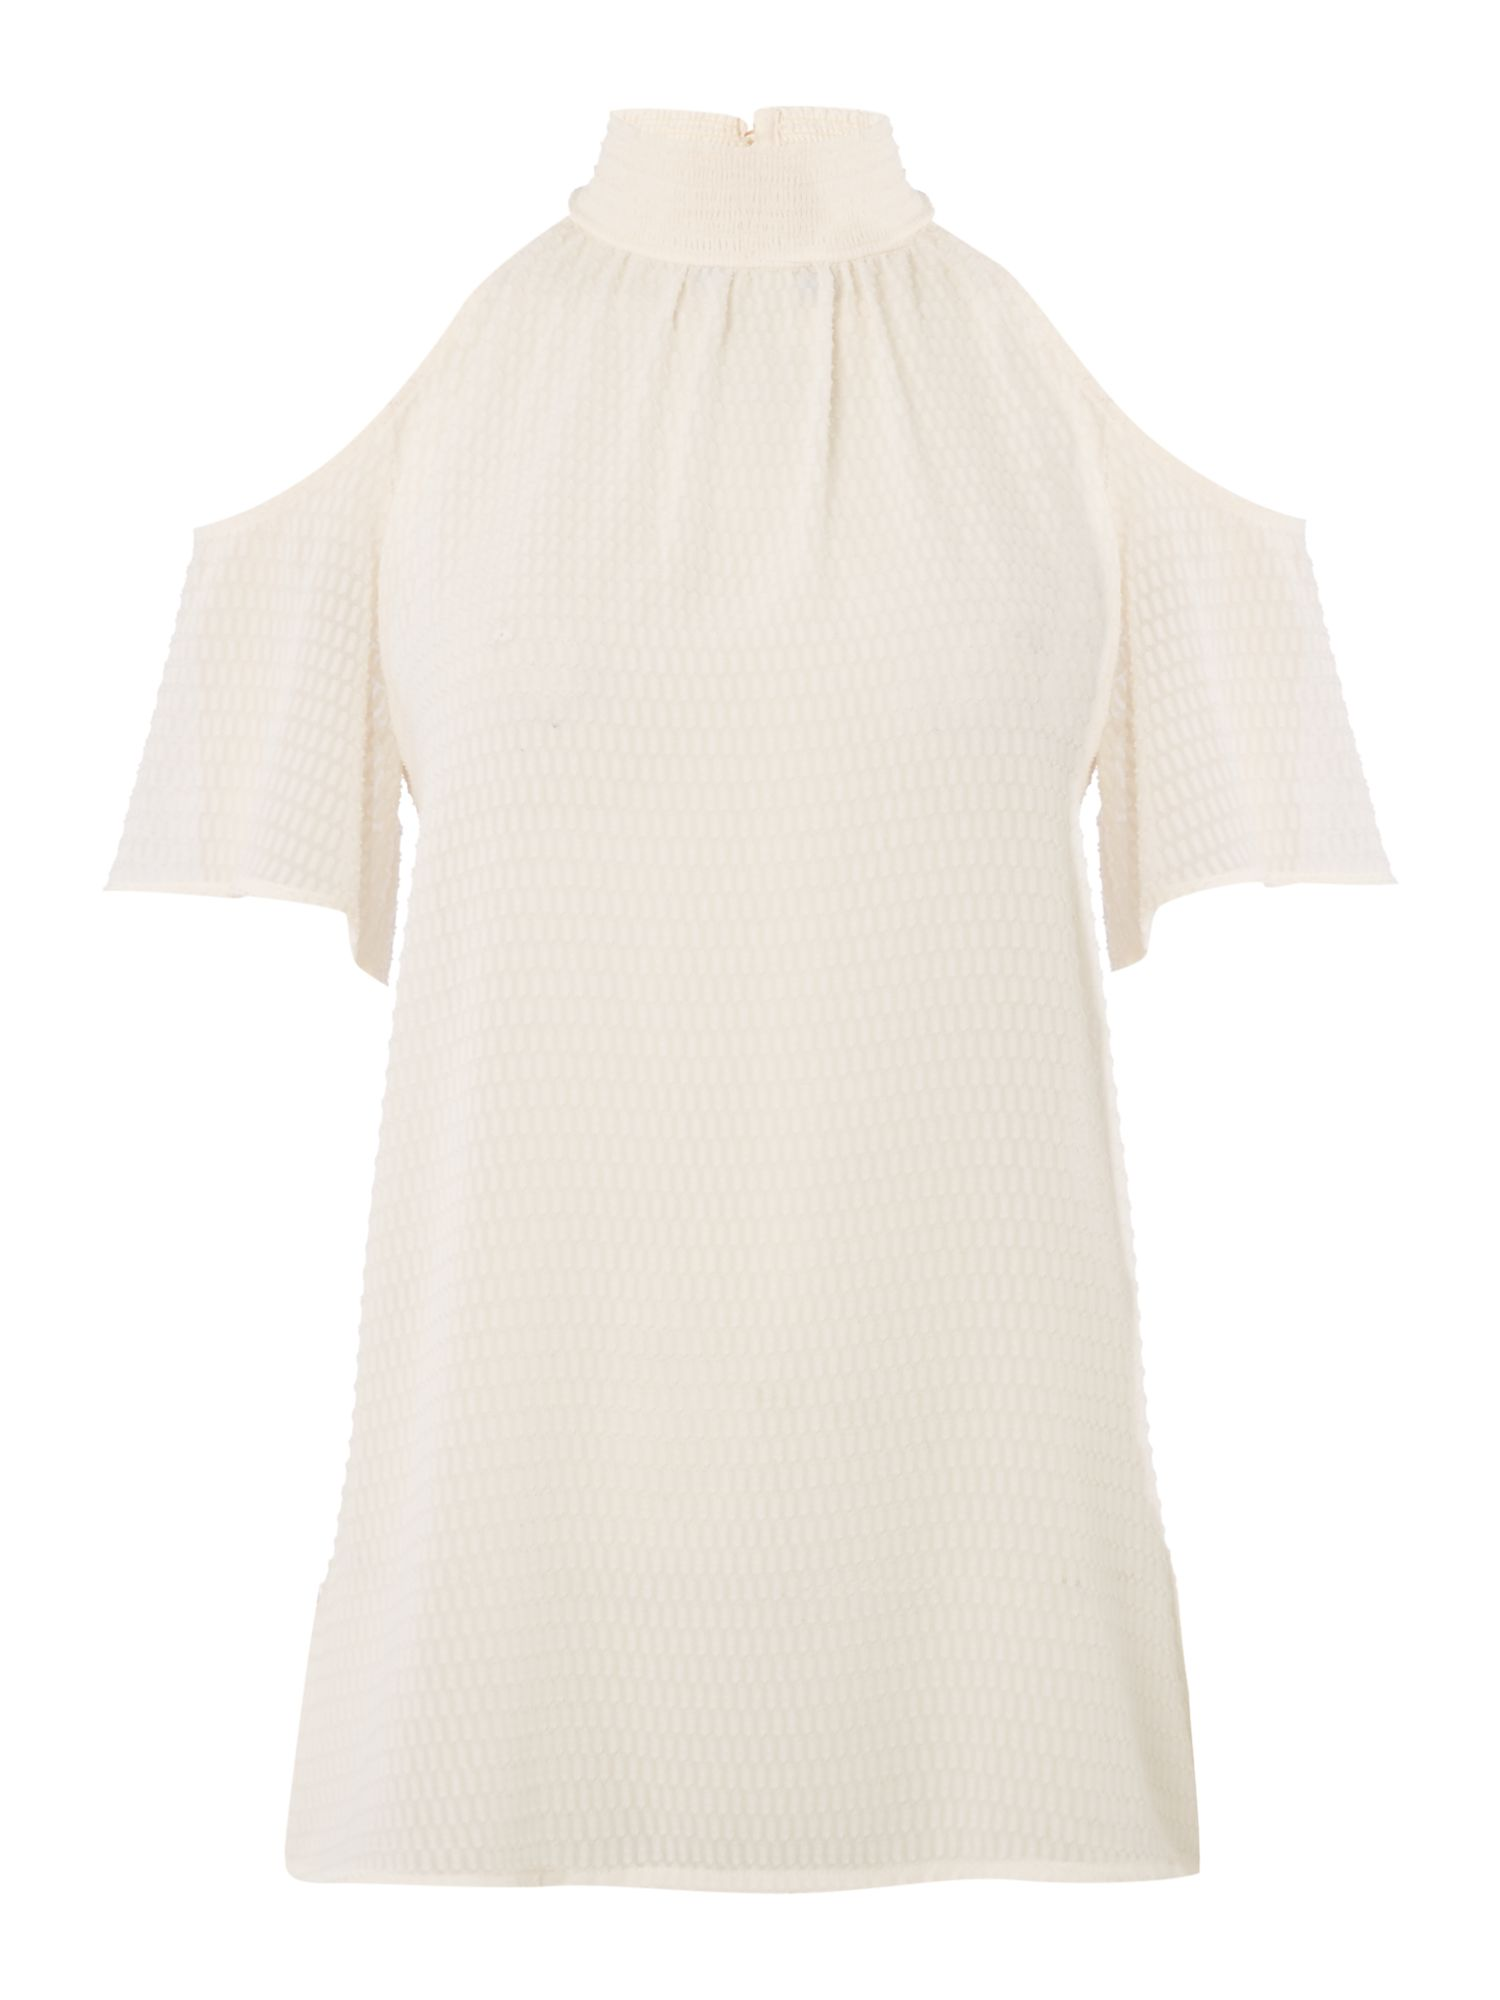 Michael Kors Cold shoulder smock top, White